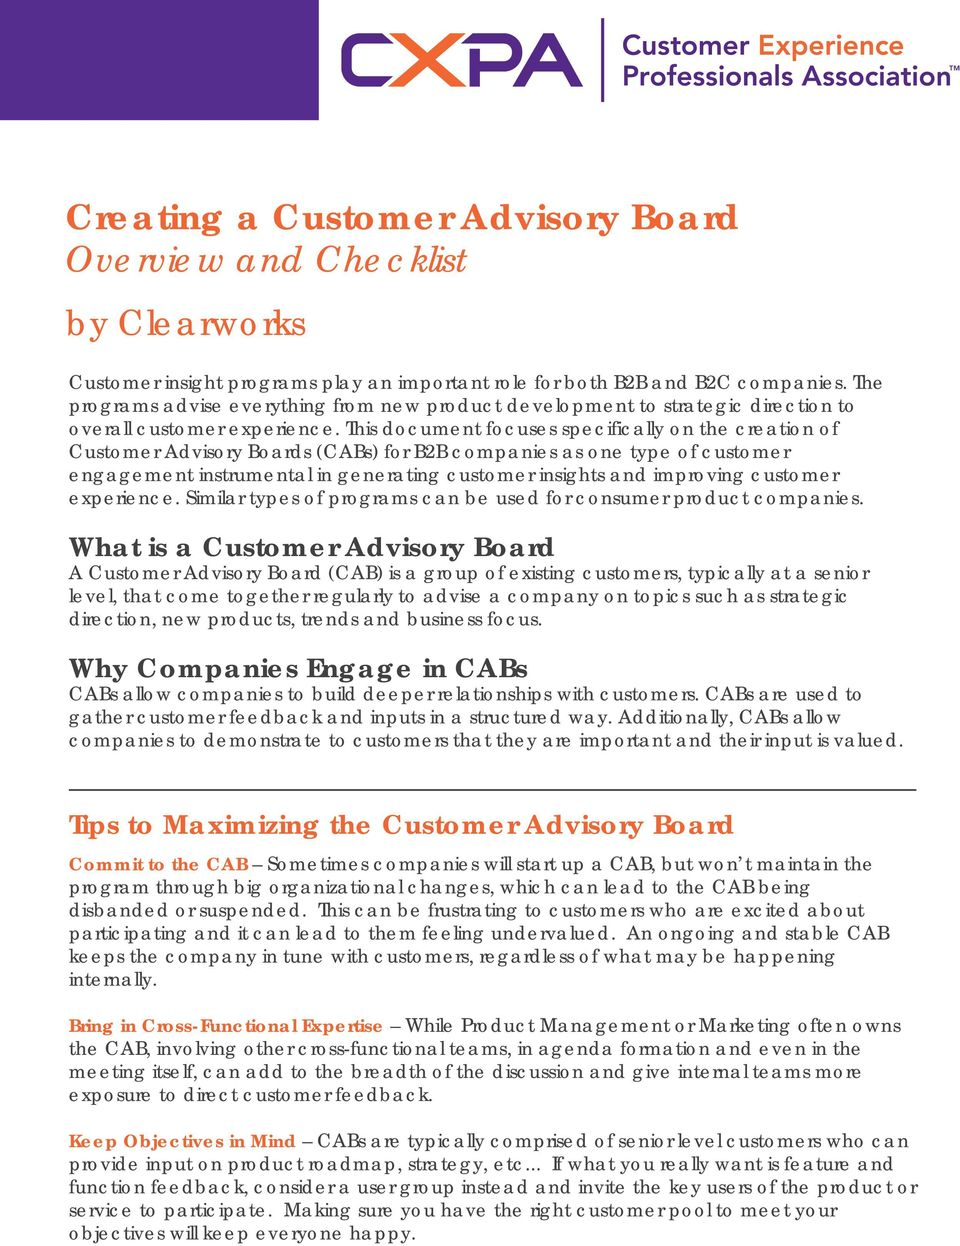 This document focuses specifically on the creation of Customer Advisory Boards (CABs) for B2B companies as one type of customer engagement instrumental in generating customer insights and improving